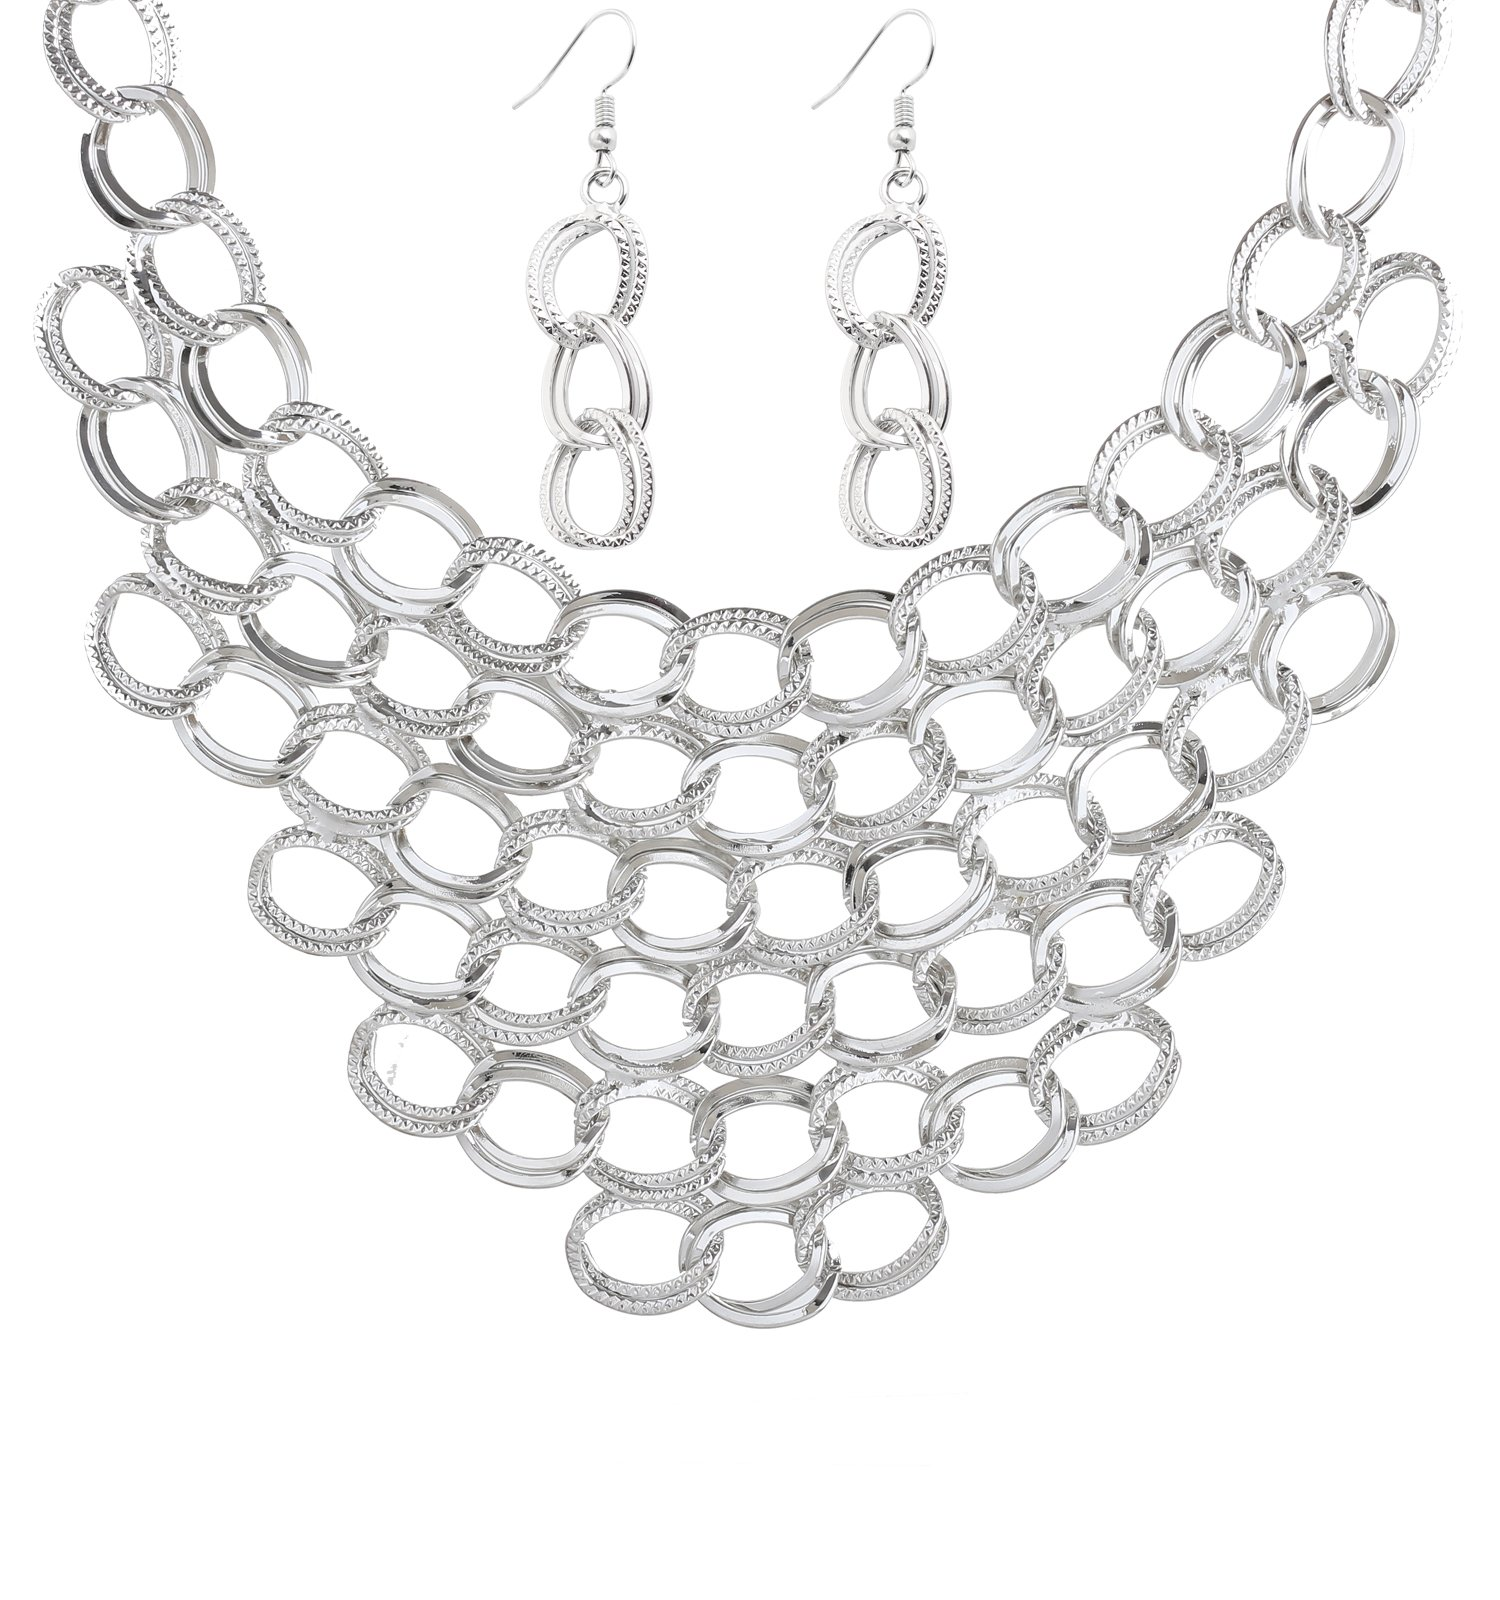 Isaloe Women Choker Necklace Statement Crochet Bib Necklace Earring Sets (Silver)